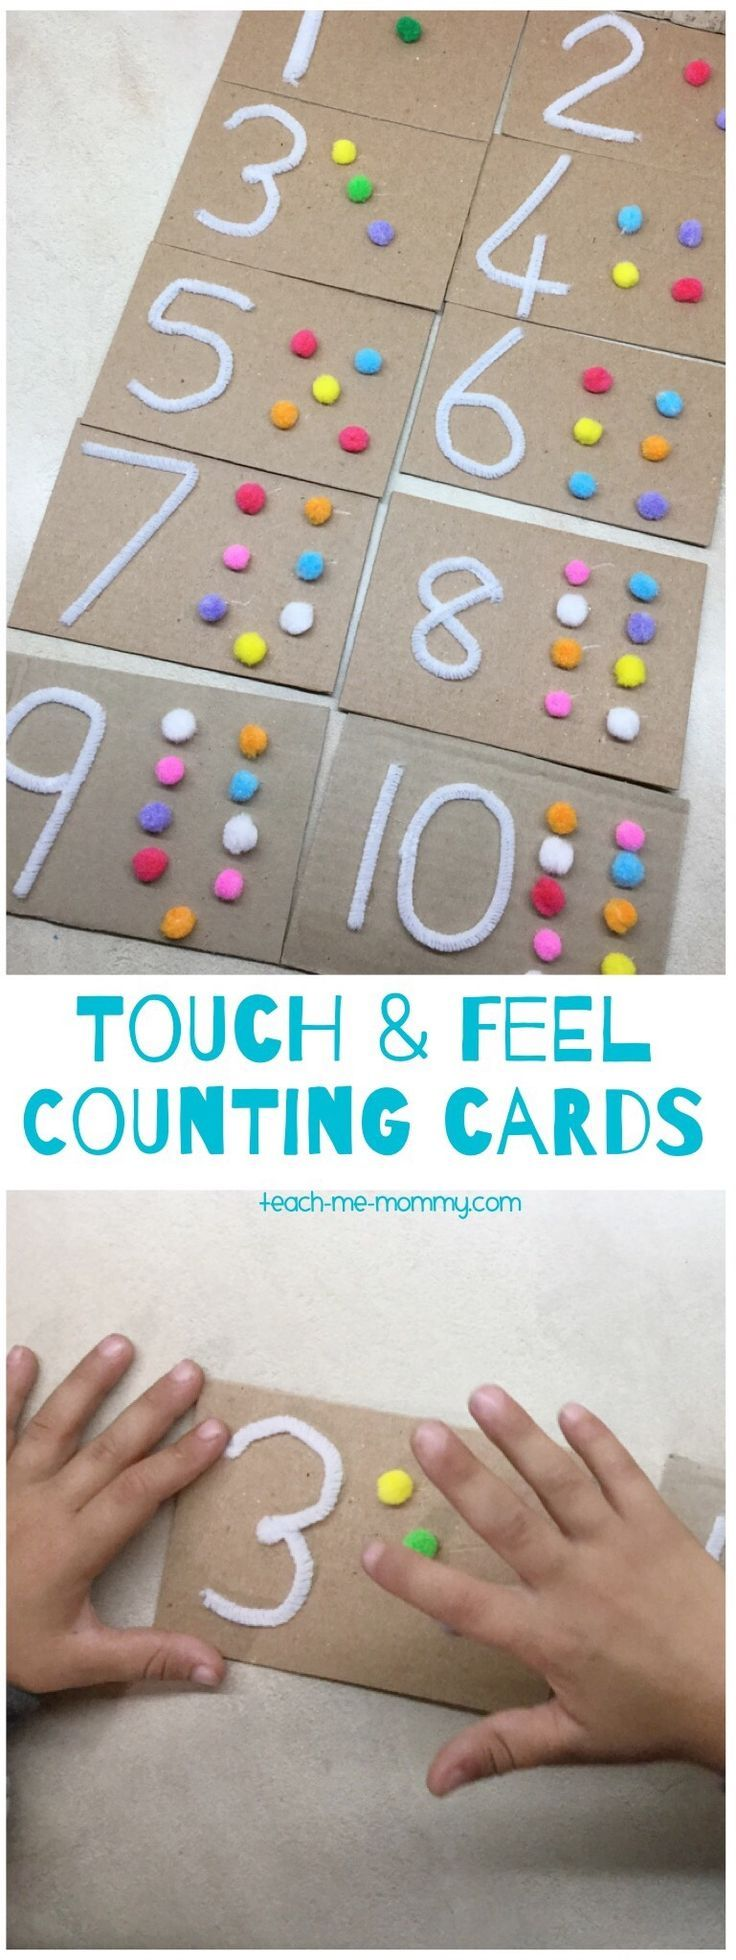 Touch & feel counting cards, a fun multi sensory learning tool to make yourself!